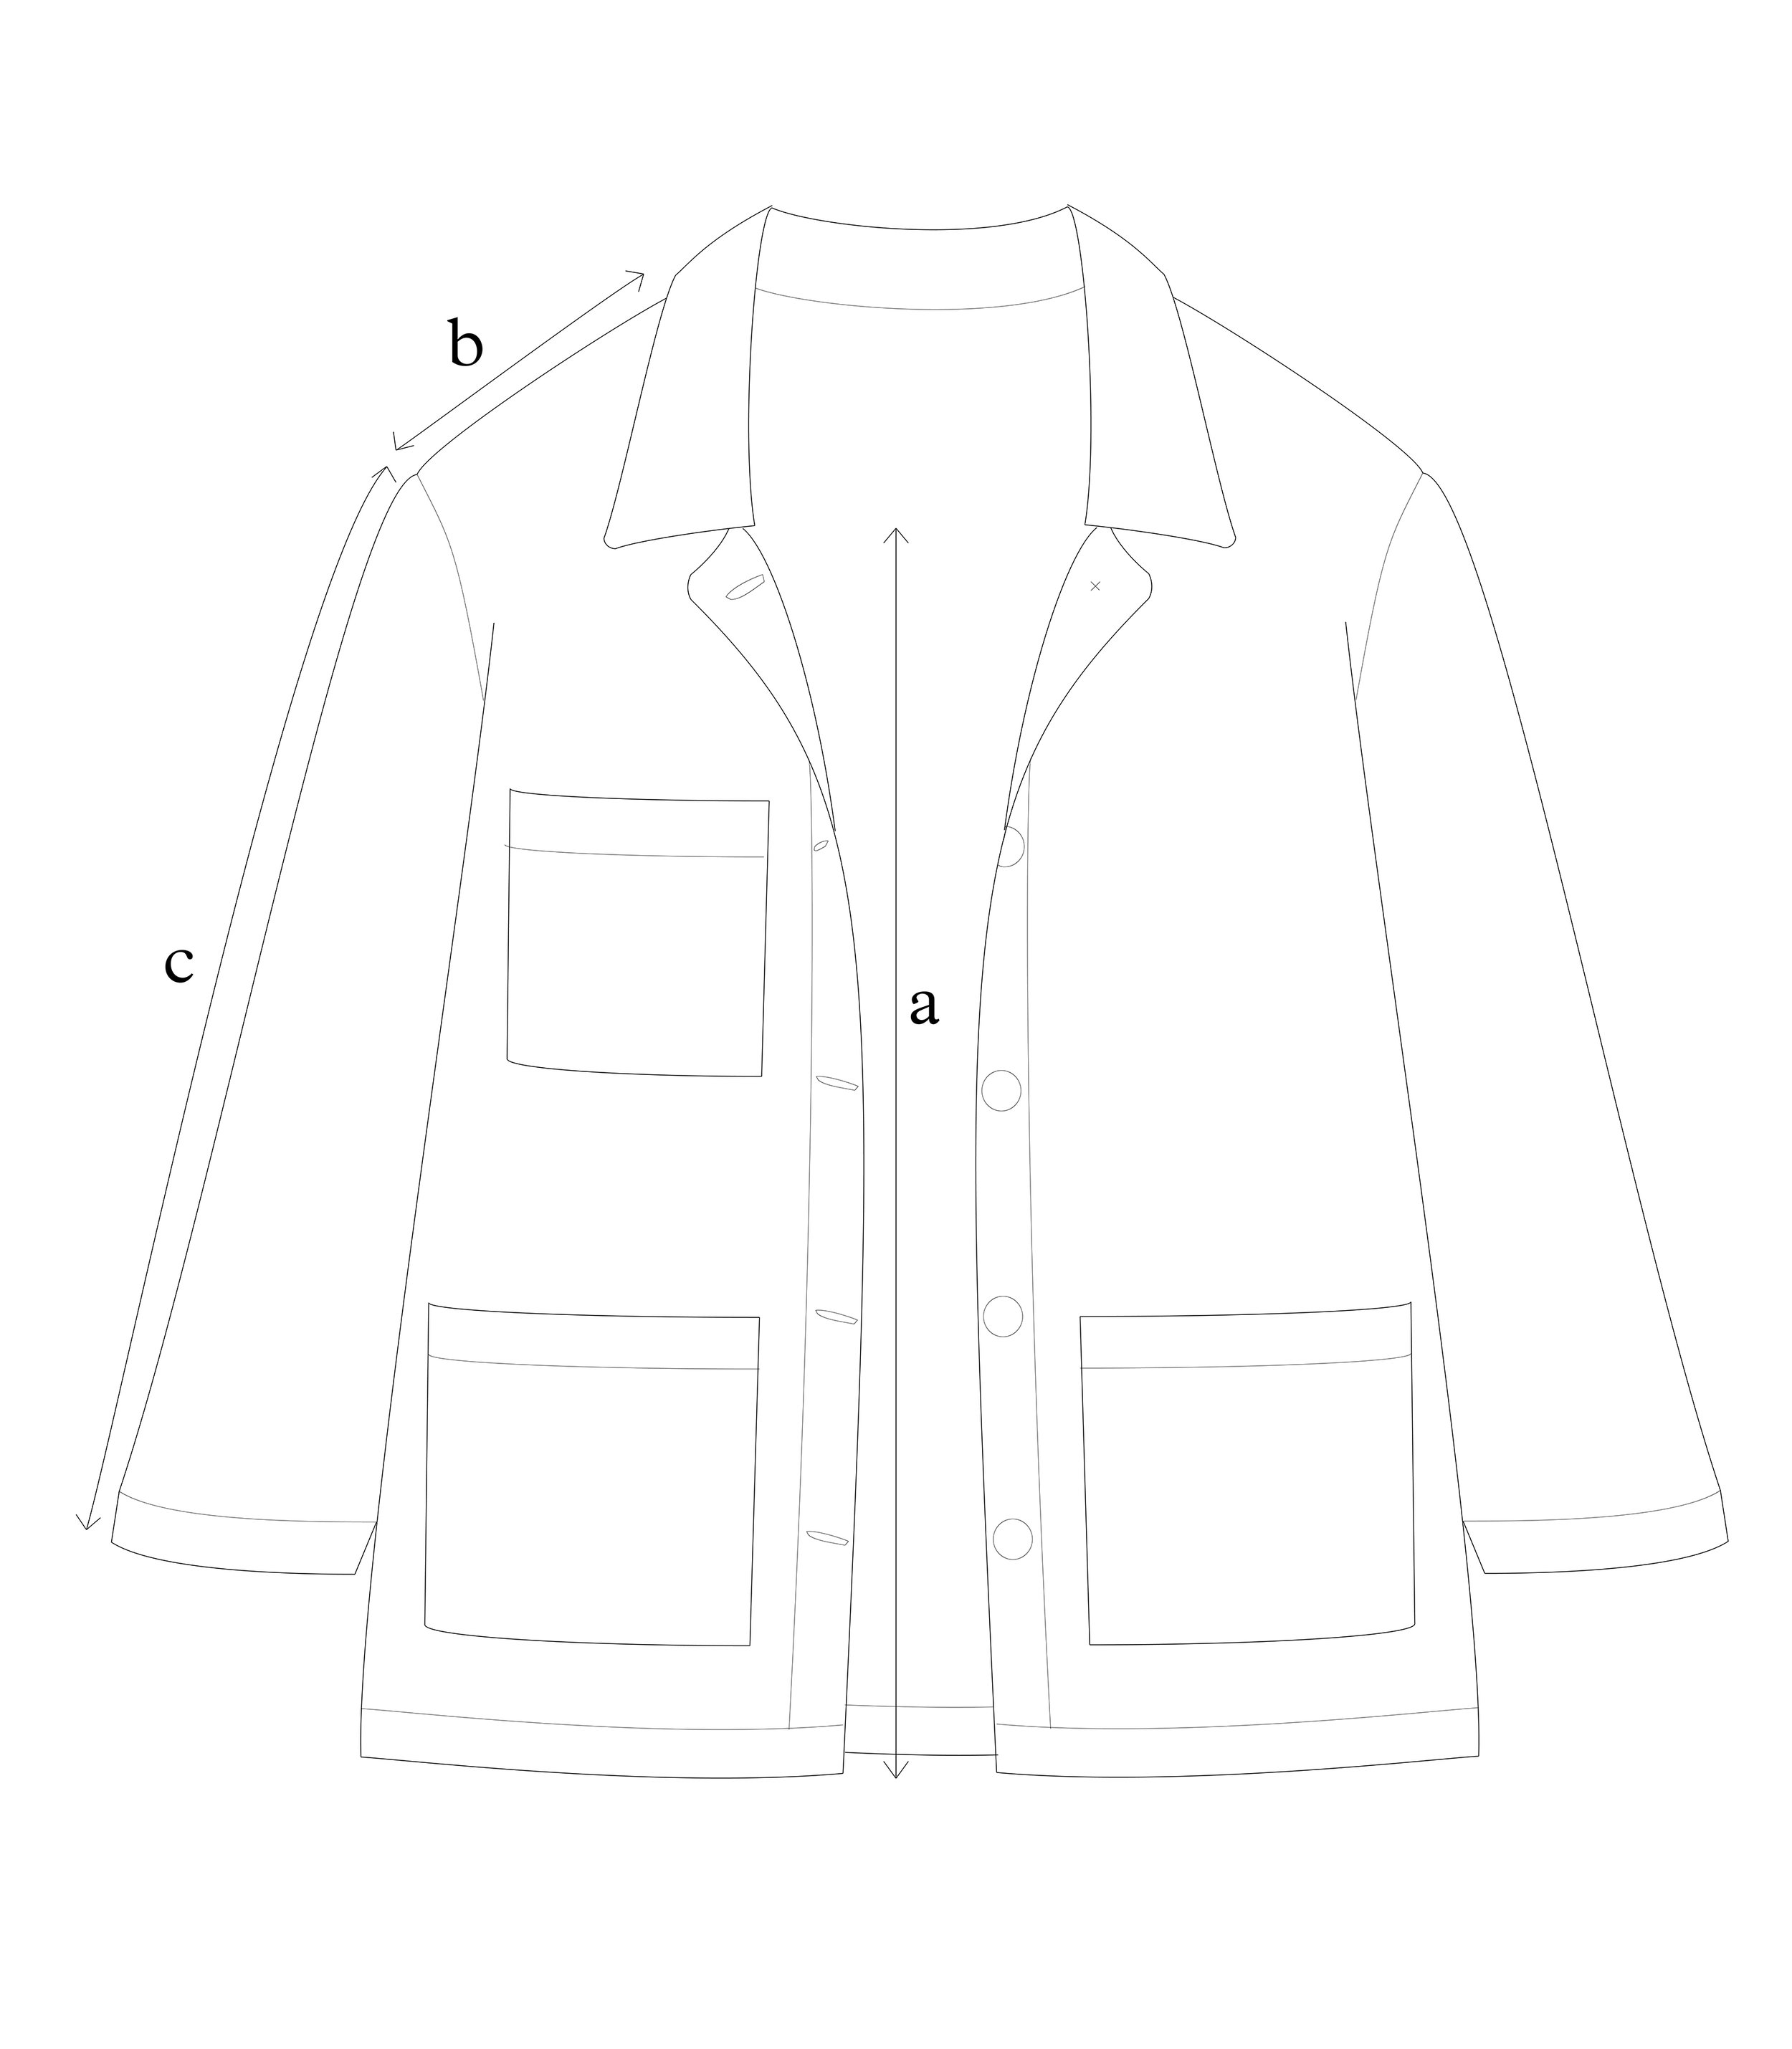 #038 jacket - line drawing.jpg